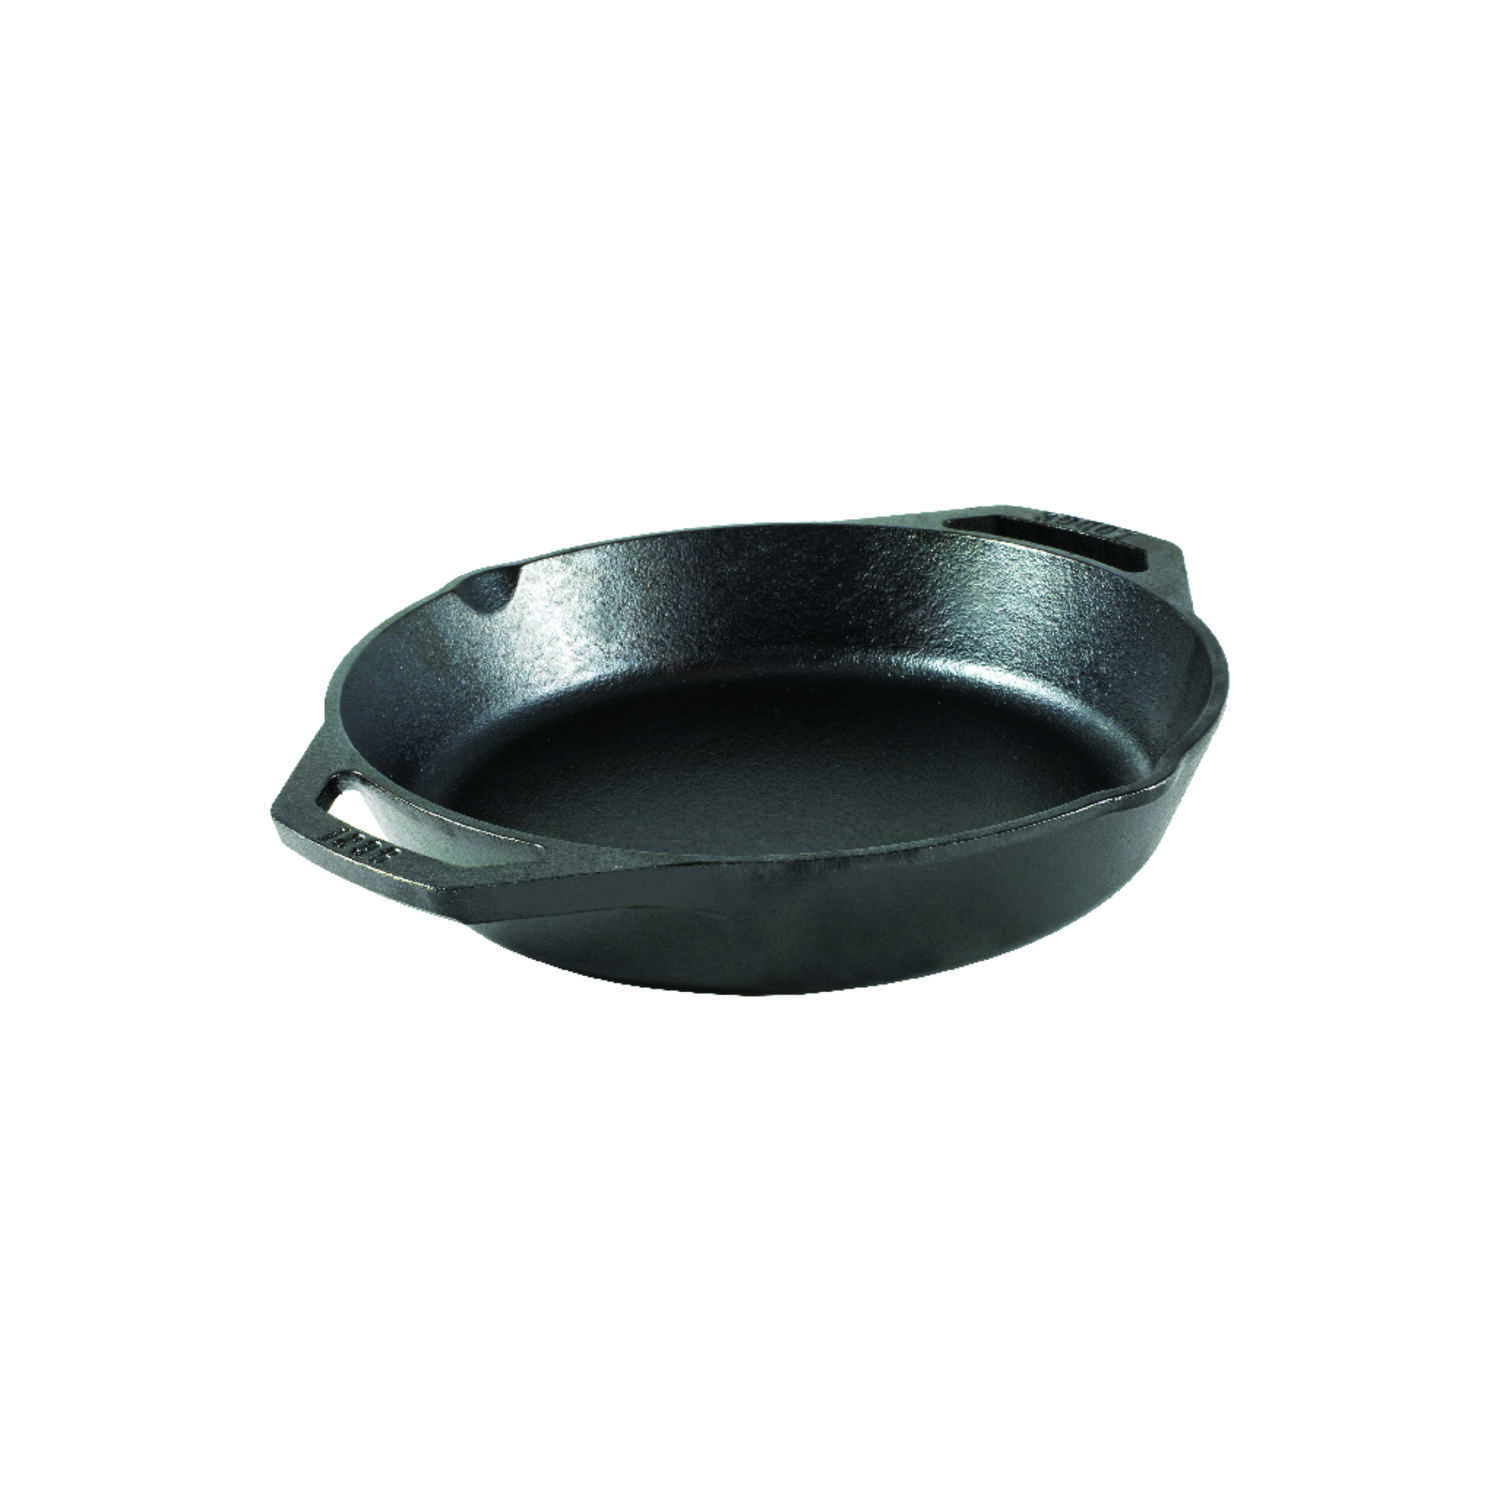 Lodge  Cast Iron  Skillet  10-1/4 in. Black